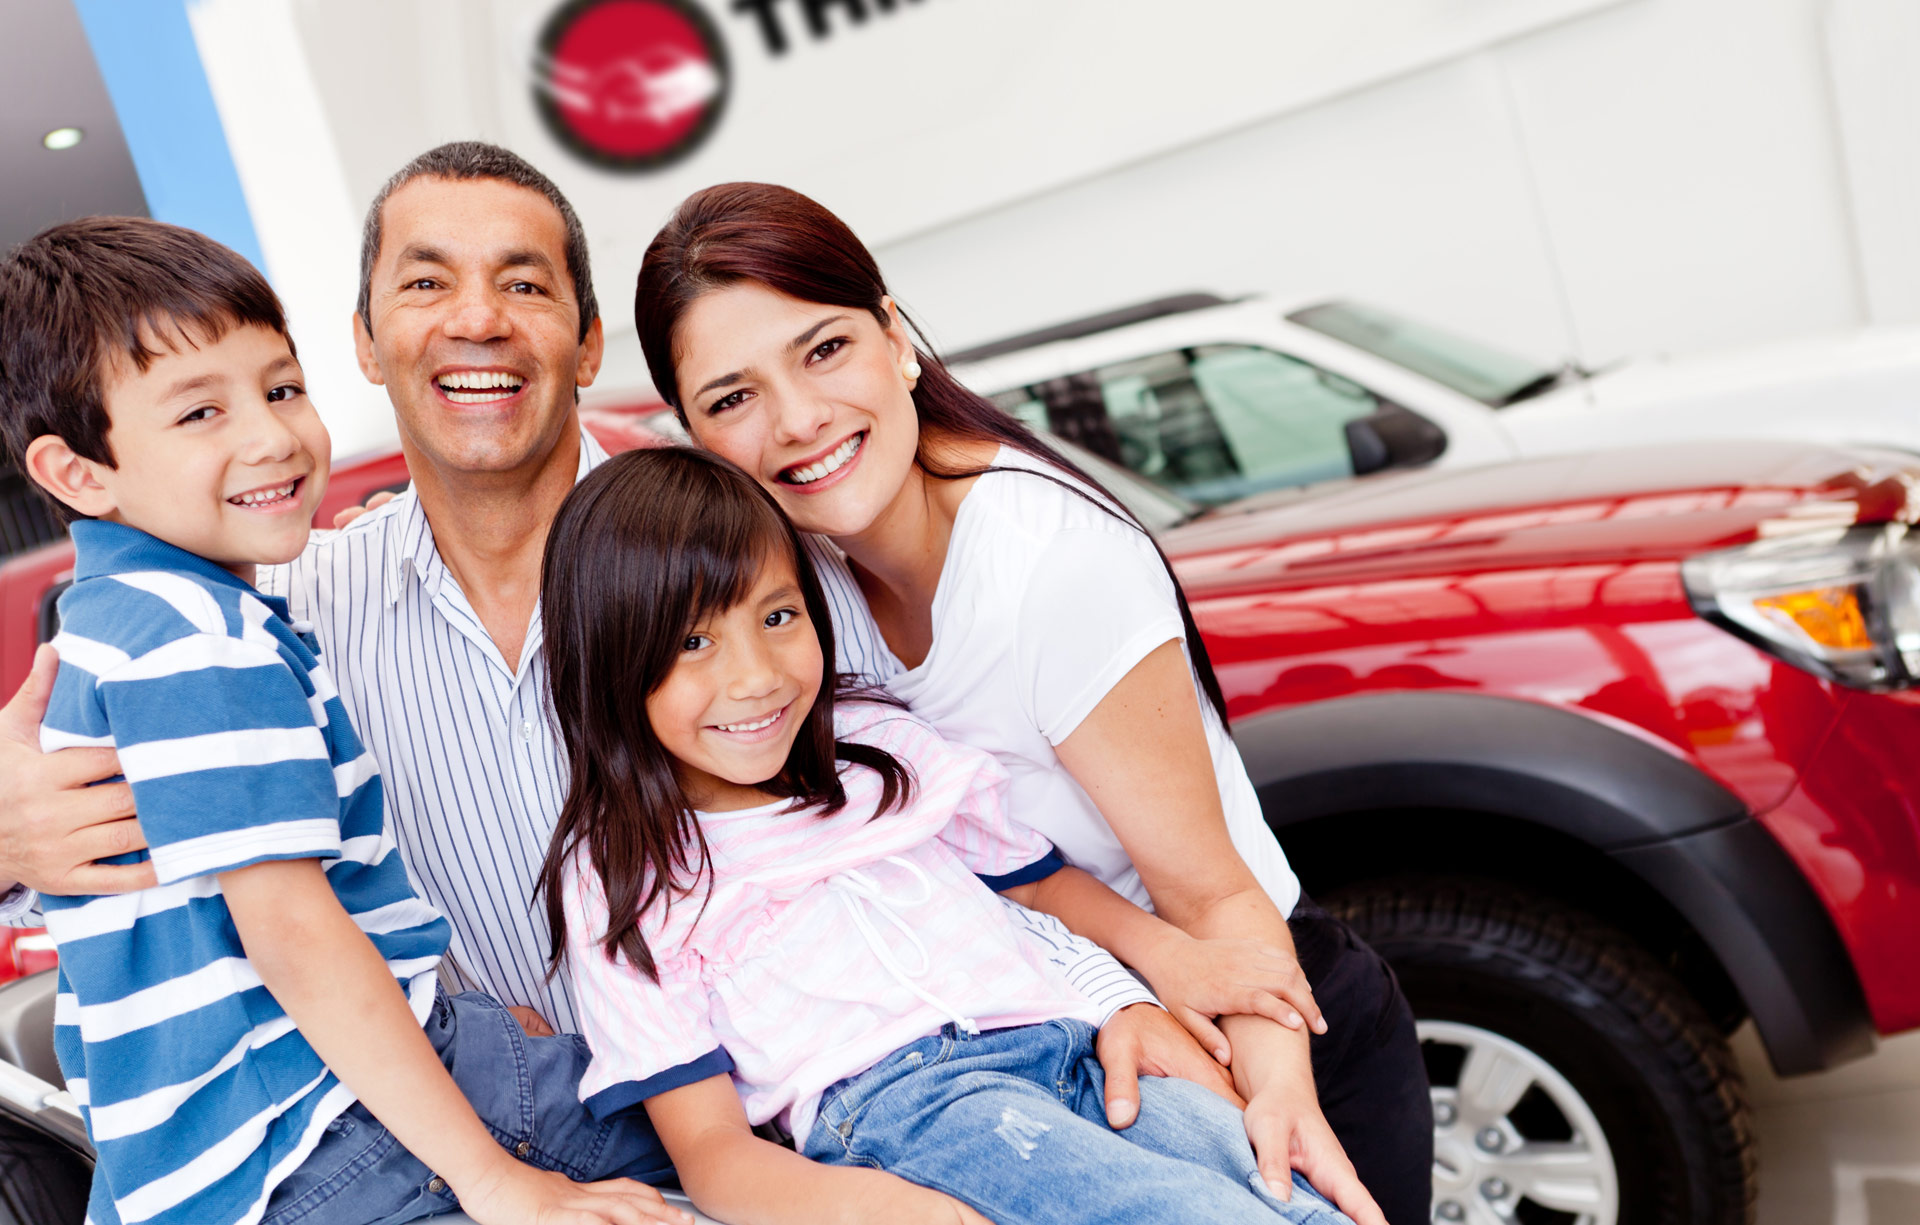 Welcome to third party mvs an authorized third party for Third party motor vehicle